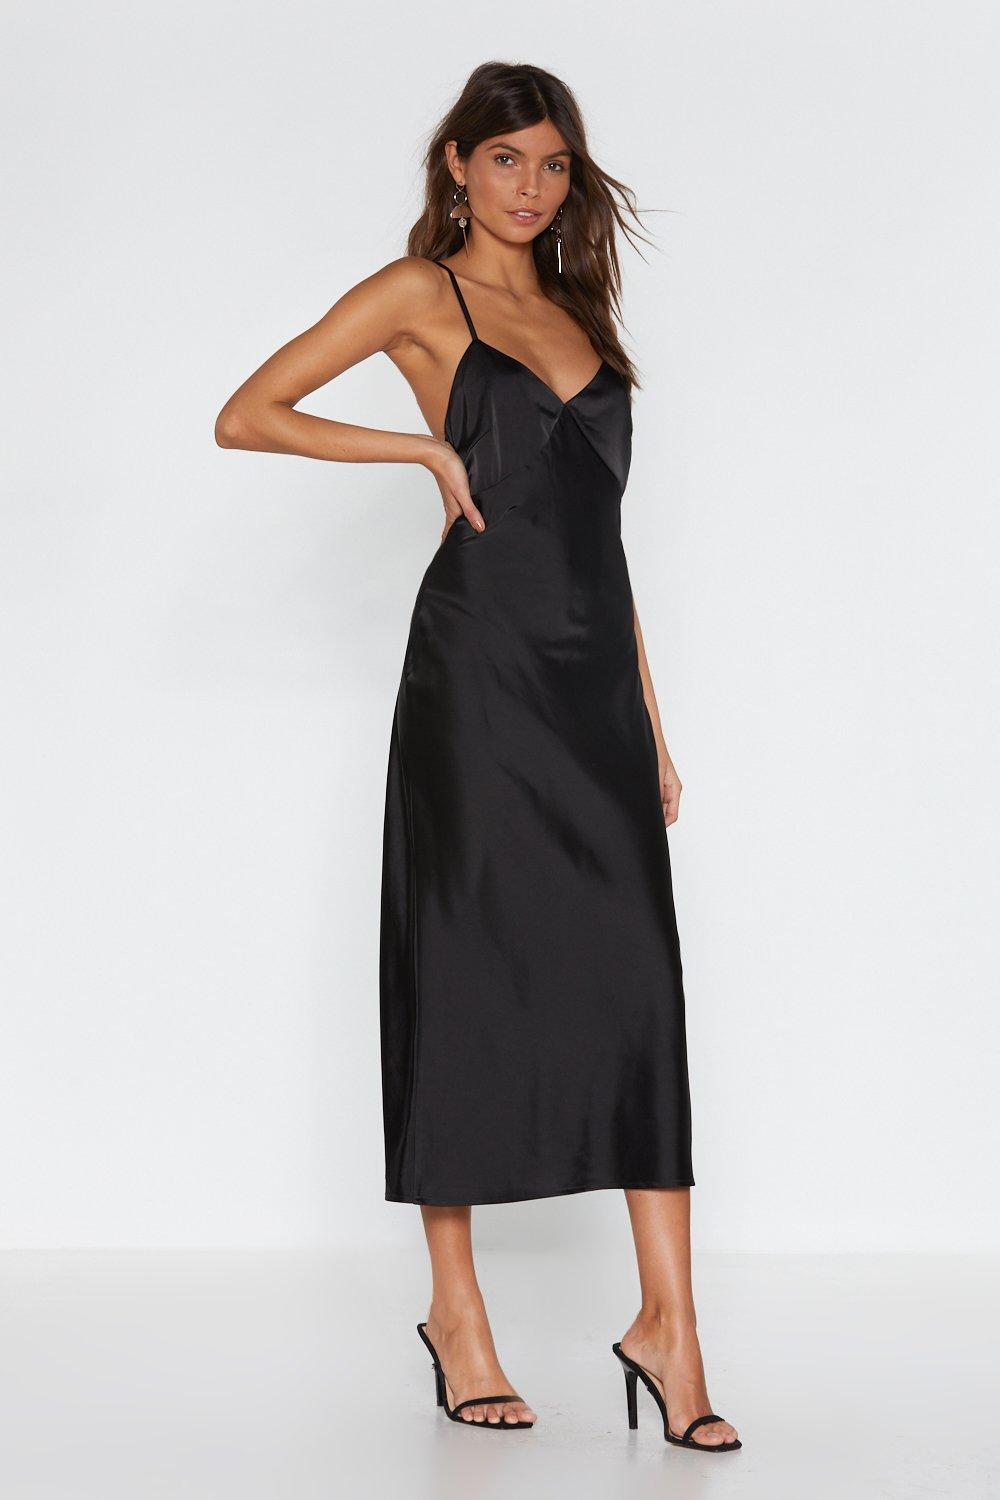 Satin midi dress black